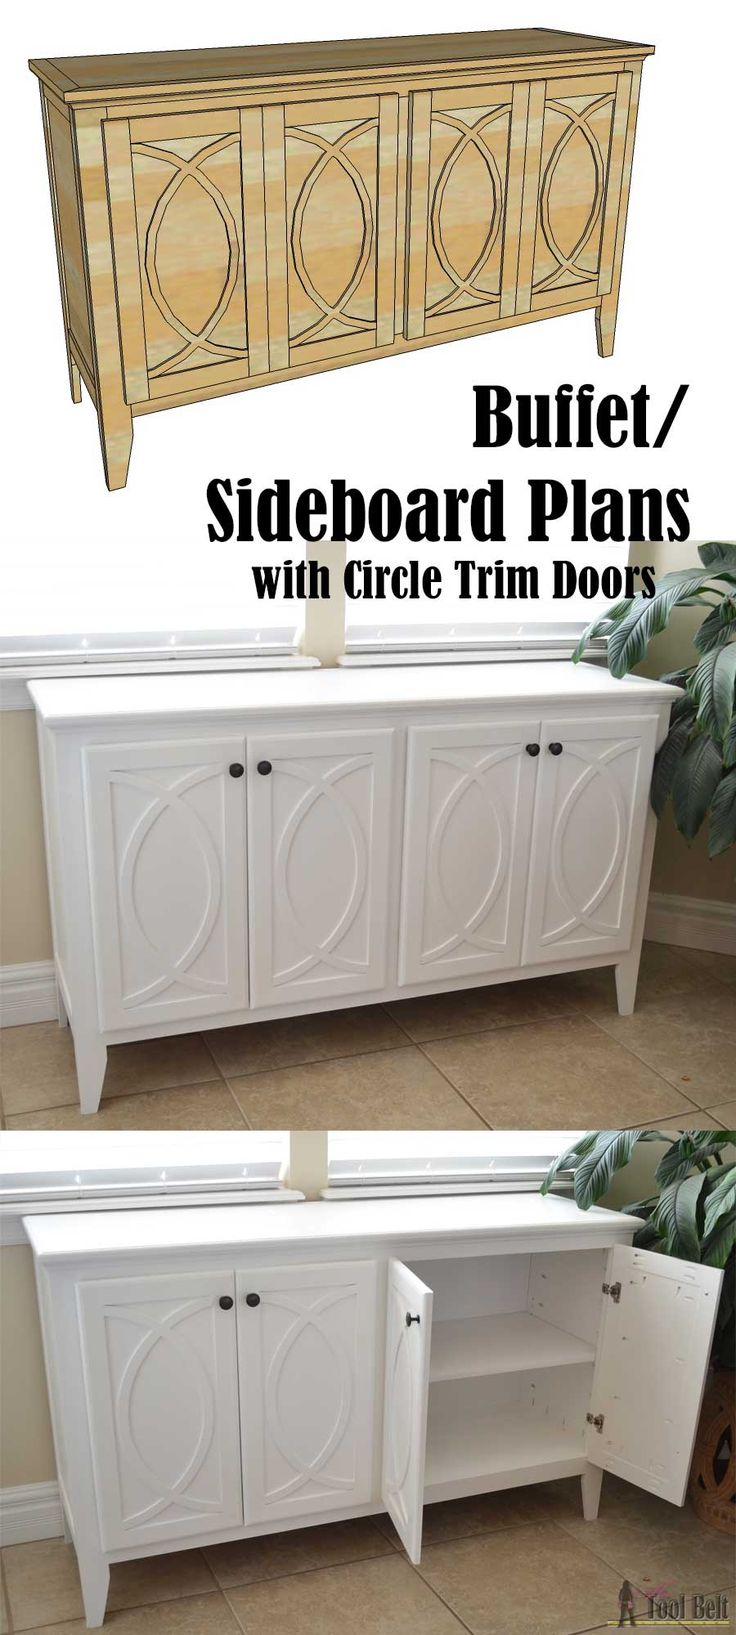 Diy Buffet Or Sideboard With Circle Trim Doors This Buffet Cabinet Boasts Plenty Of Dining